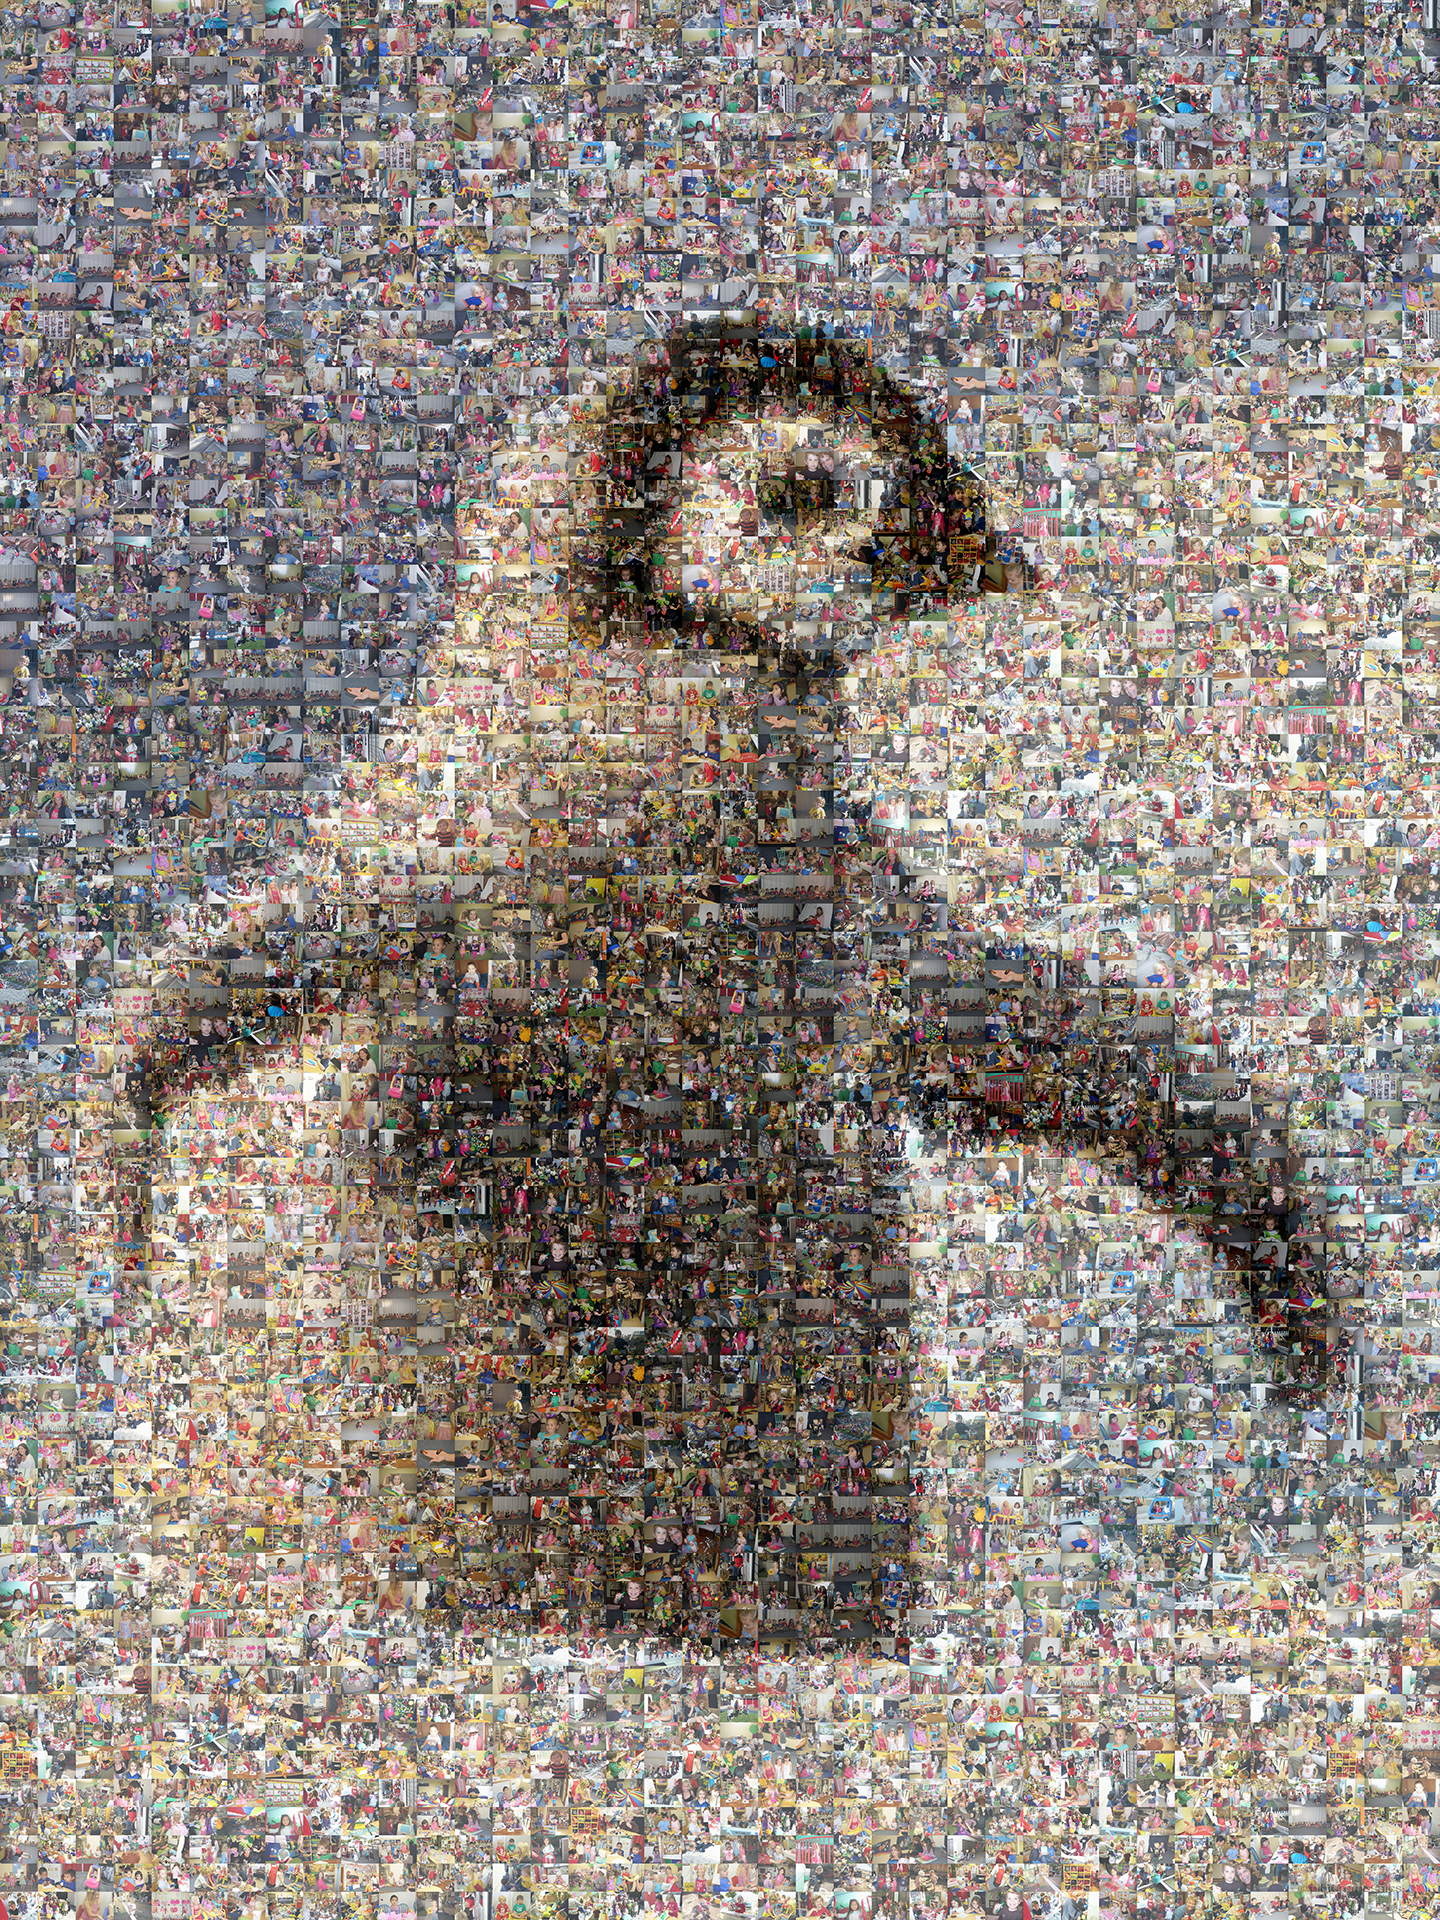 photo mosaic using 443 customer and employee photos